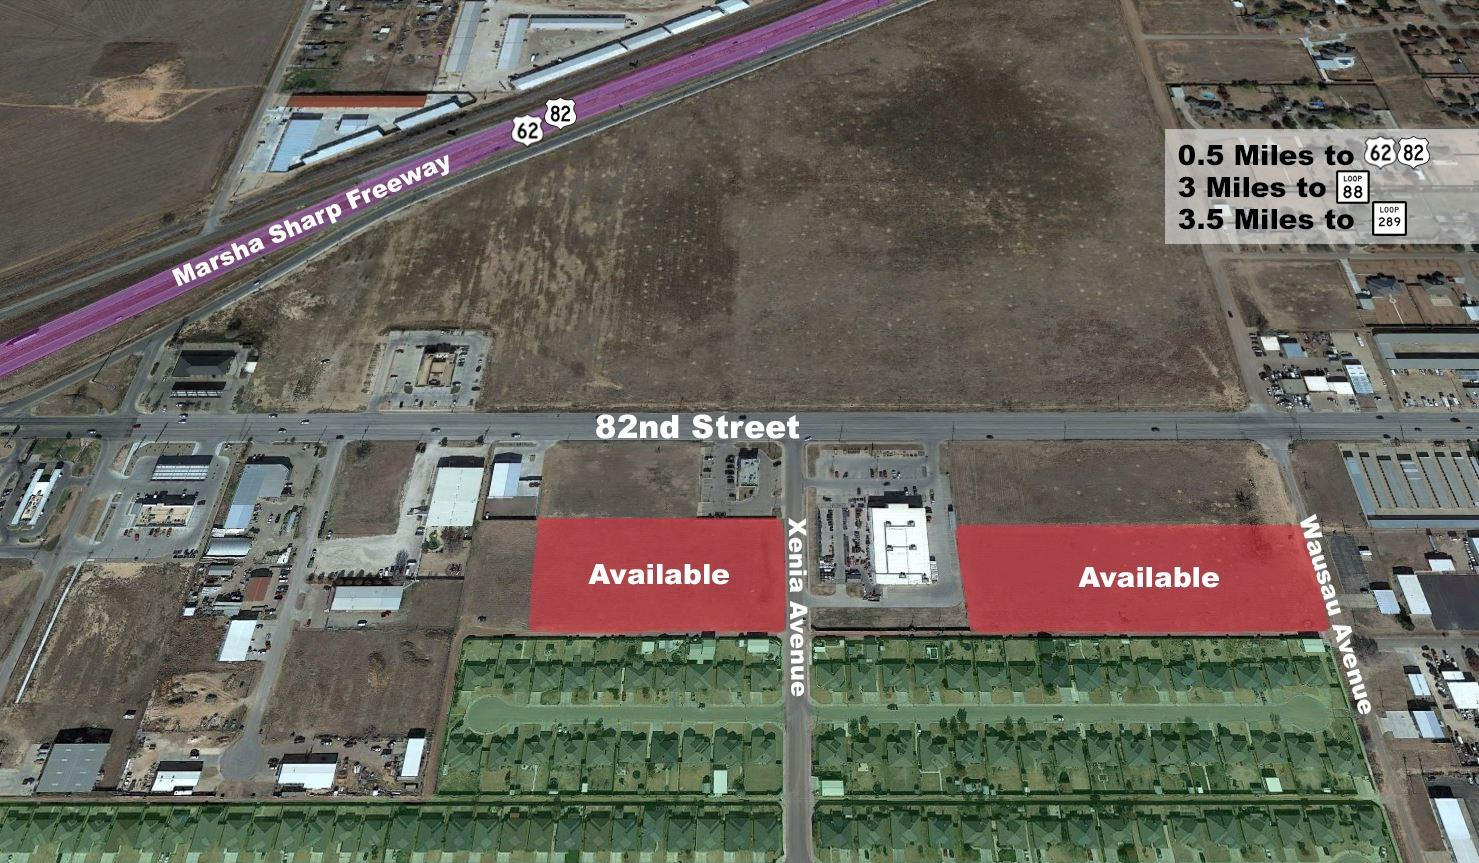 8.2198 Acres just off 82nd Street from Wausau to Zenith Streets. Excellent Development Property just off of 82nd Street. Easement off of 82nd Street to Access the Property. Just West of Milwaukee off of 82nd